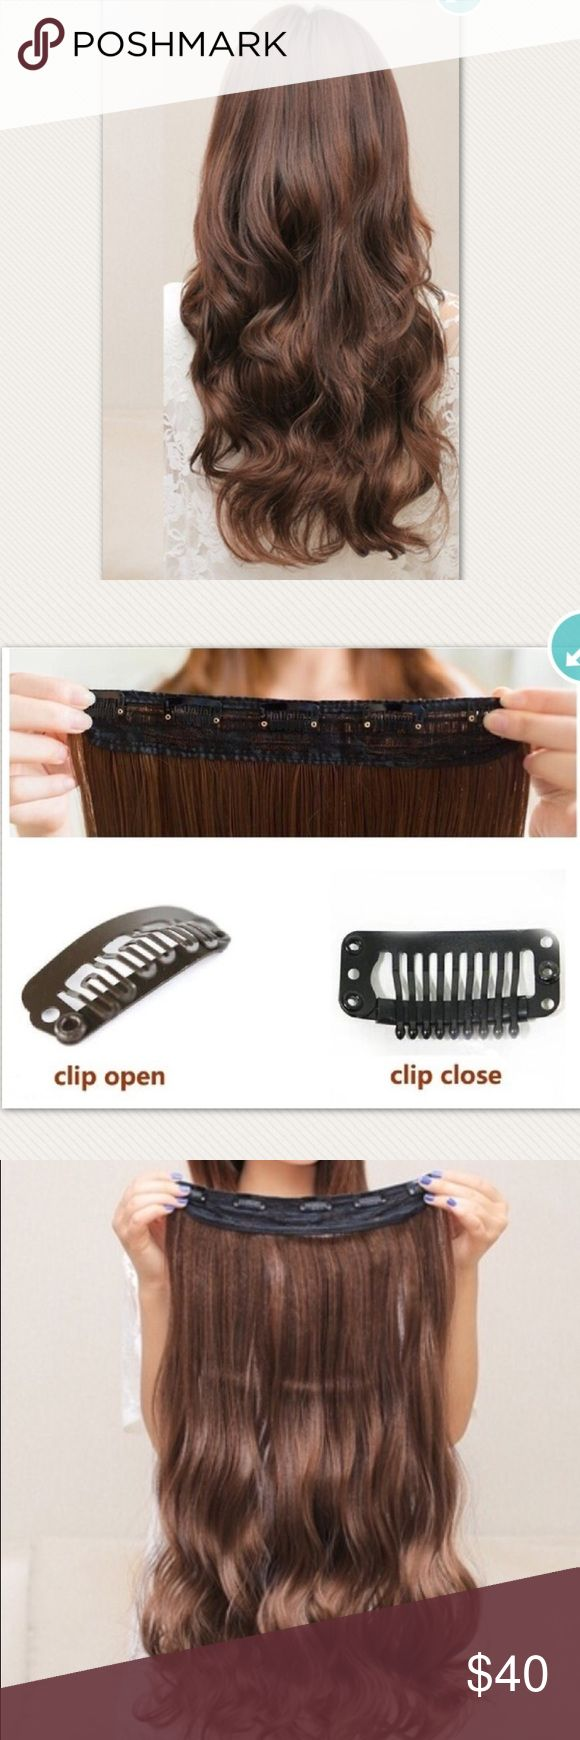 """24"""" clip on hair extensions Color - Brown - straight - one piece clip on Accessories Hair Accessories"""